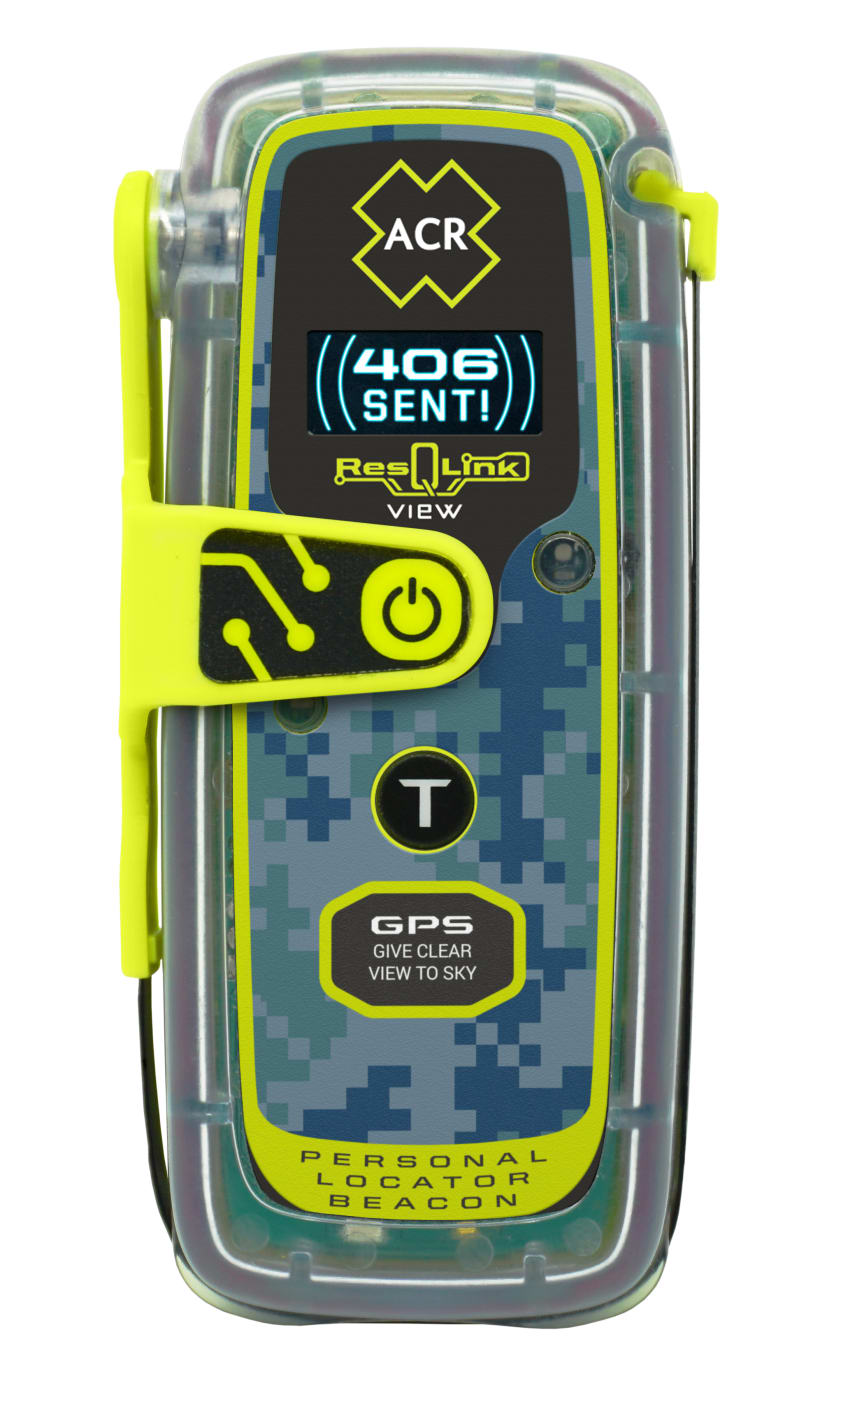 Hi-res image - ACR Electronics - ACR Electronics ResQLink View Personal Locator Beacon (PLB) with Aqua Skin